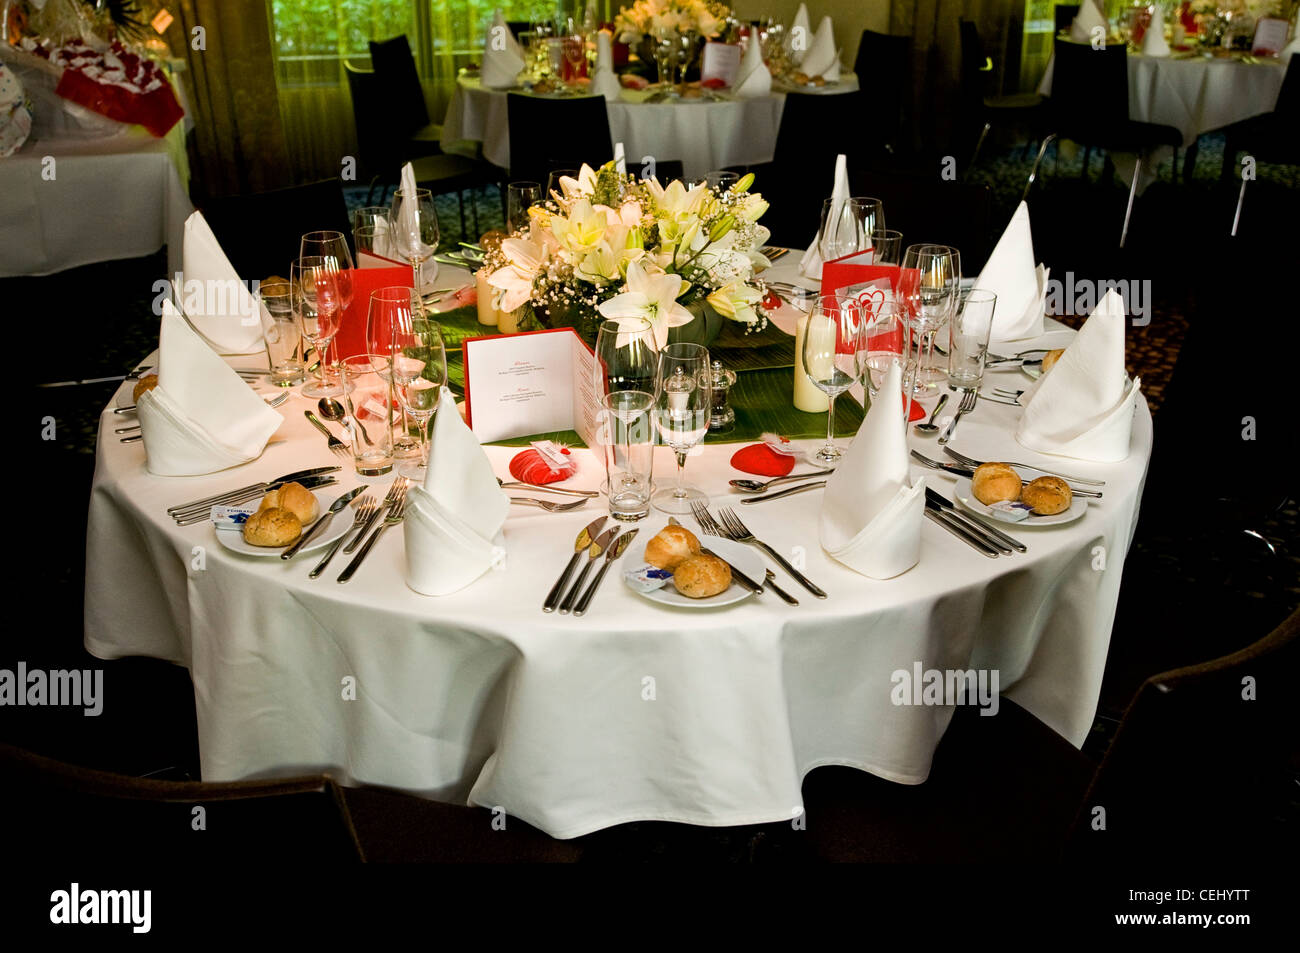 laid table at a wedding ceremony - Stock Image